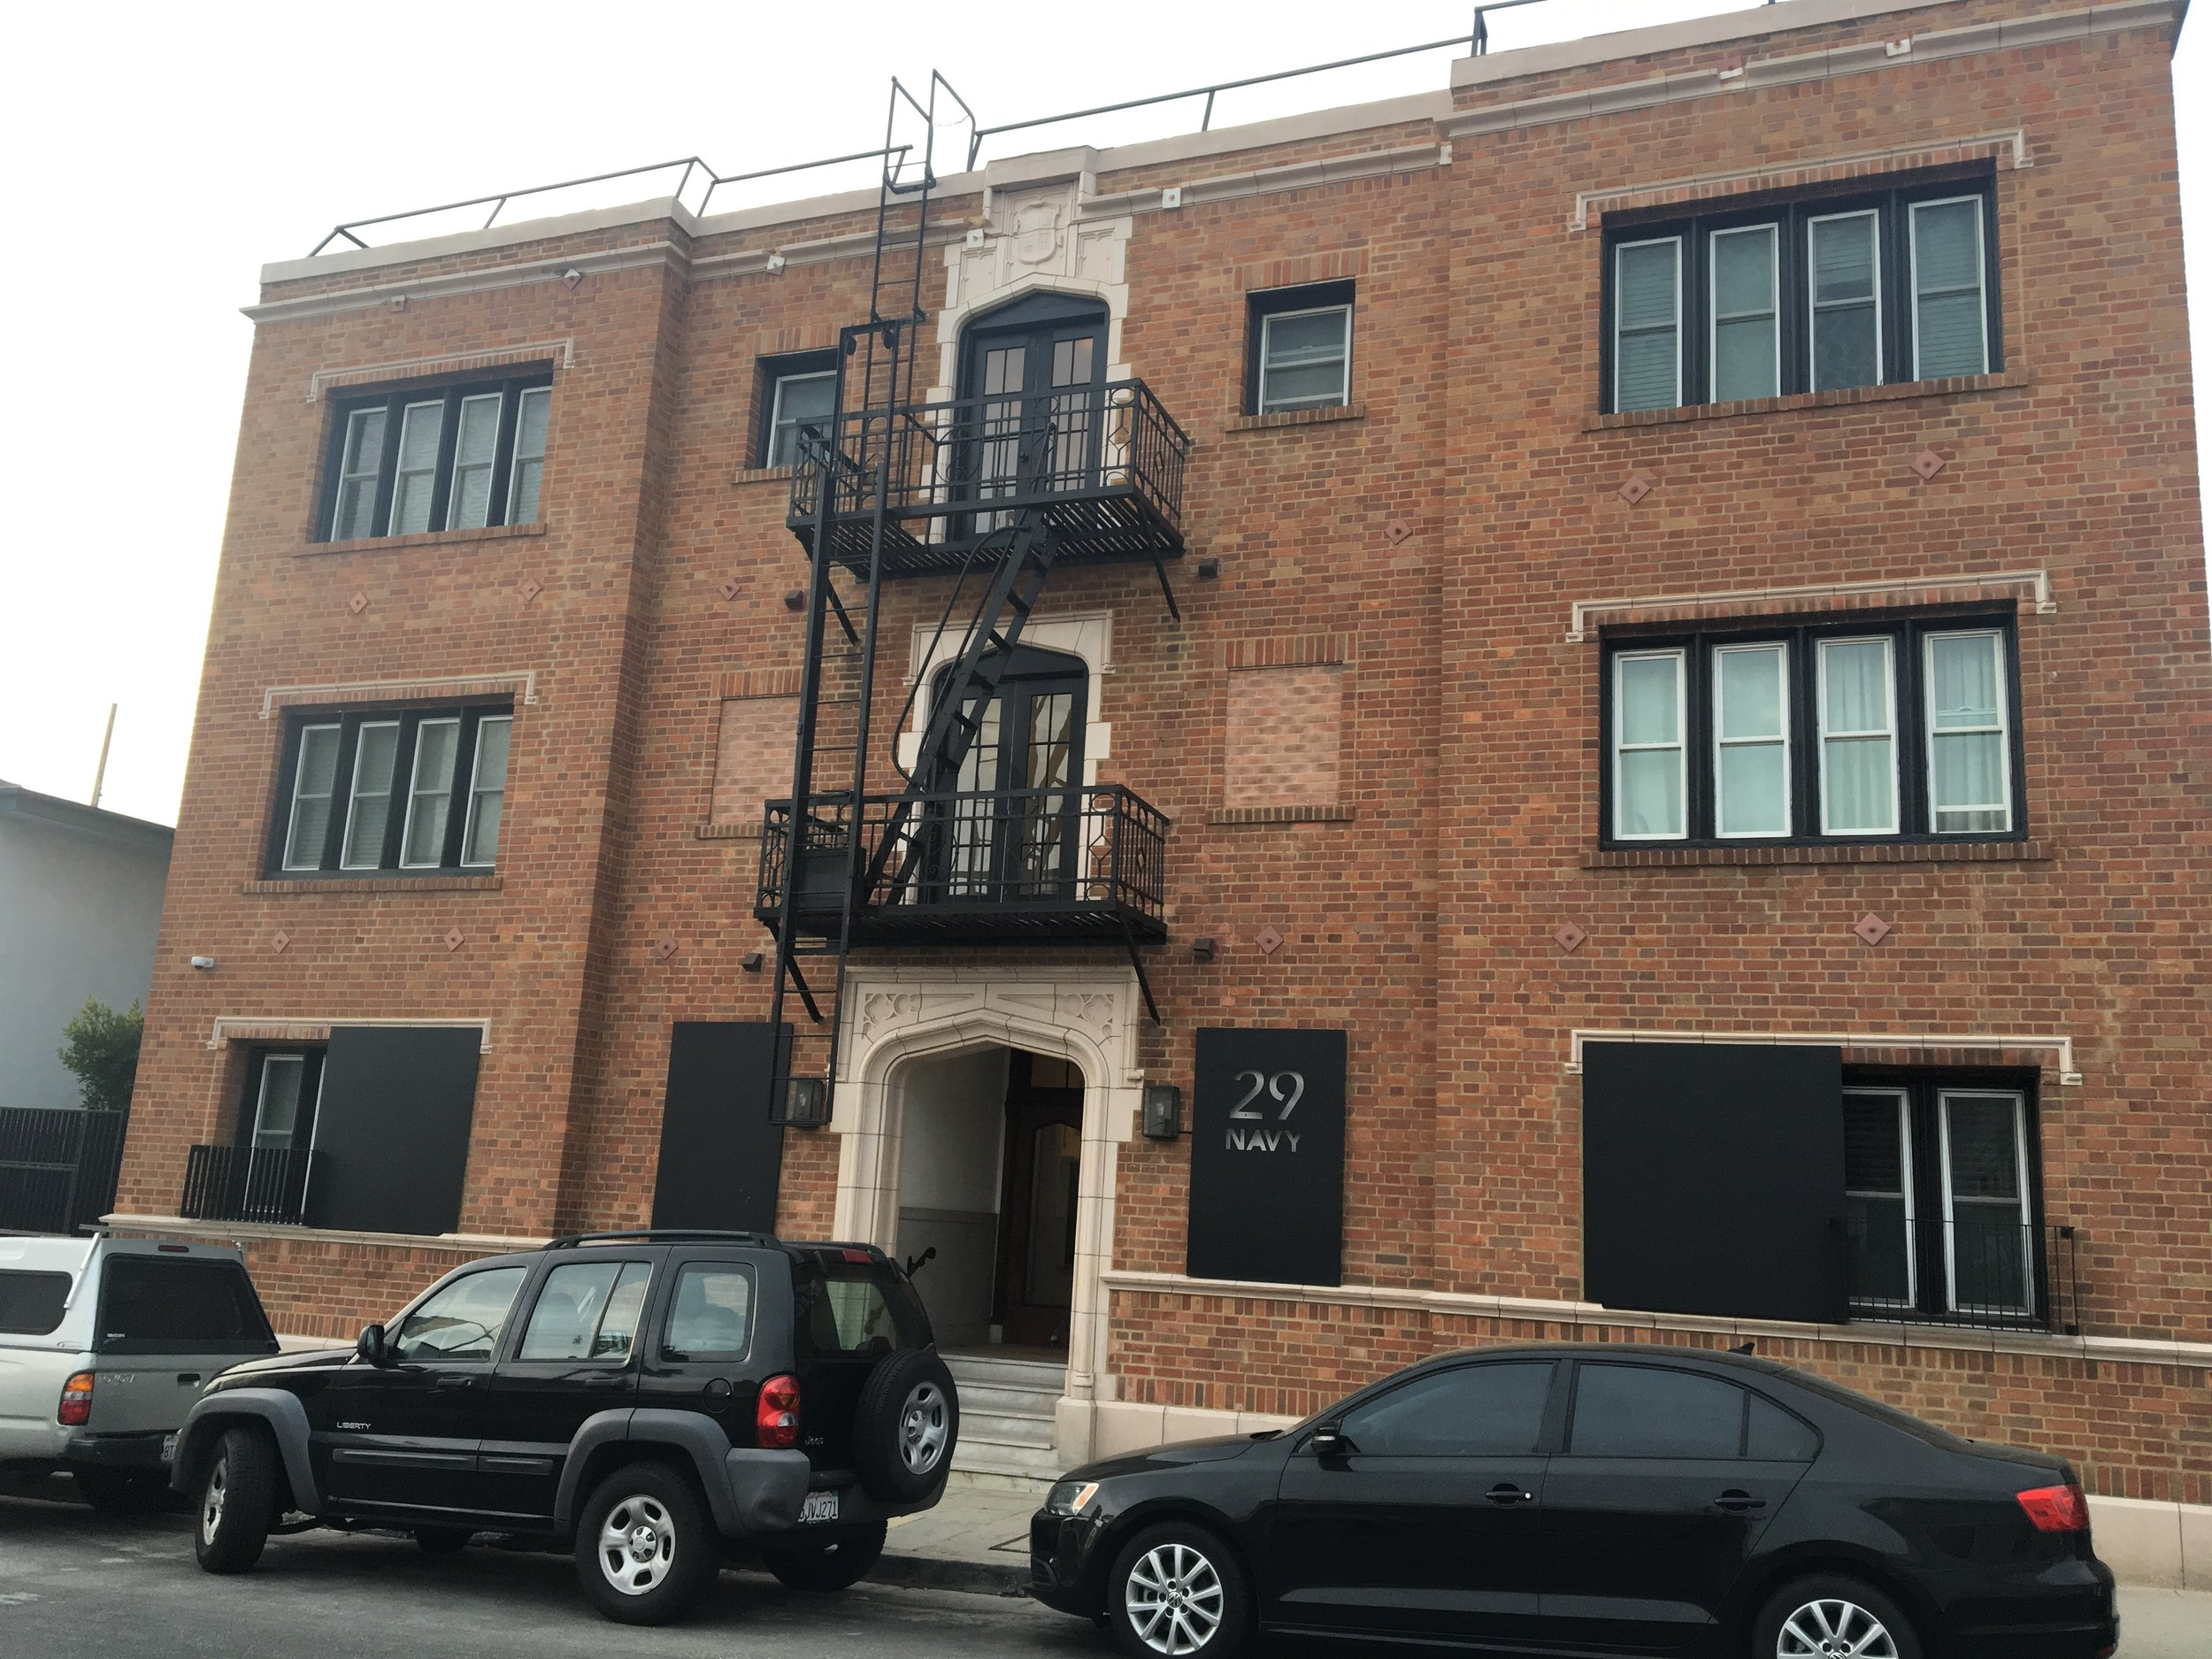 Residential tenants have been pushed out - The owner of 29 Navy paid his tenants to get out by having the apartments remodeled. Snap now uses 100% of the building housing for their interns